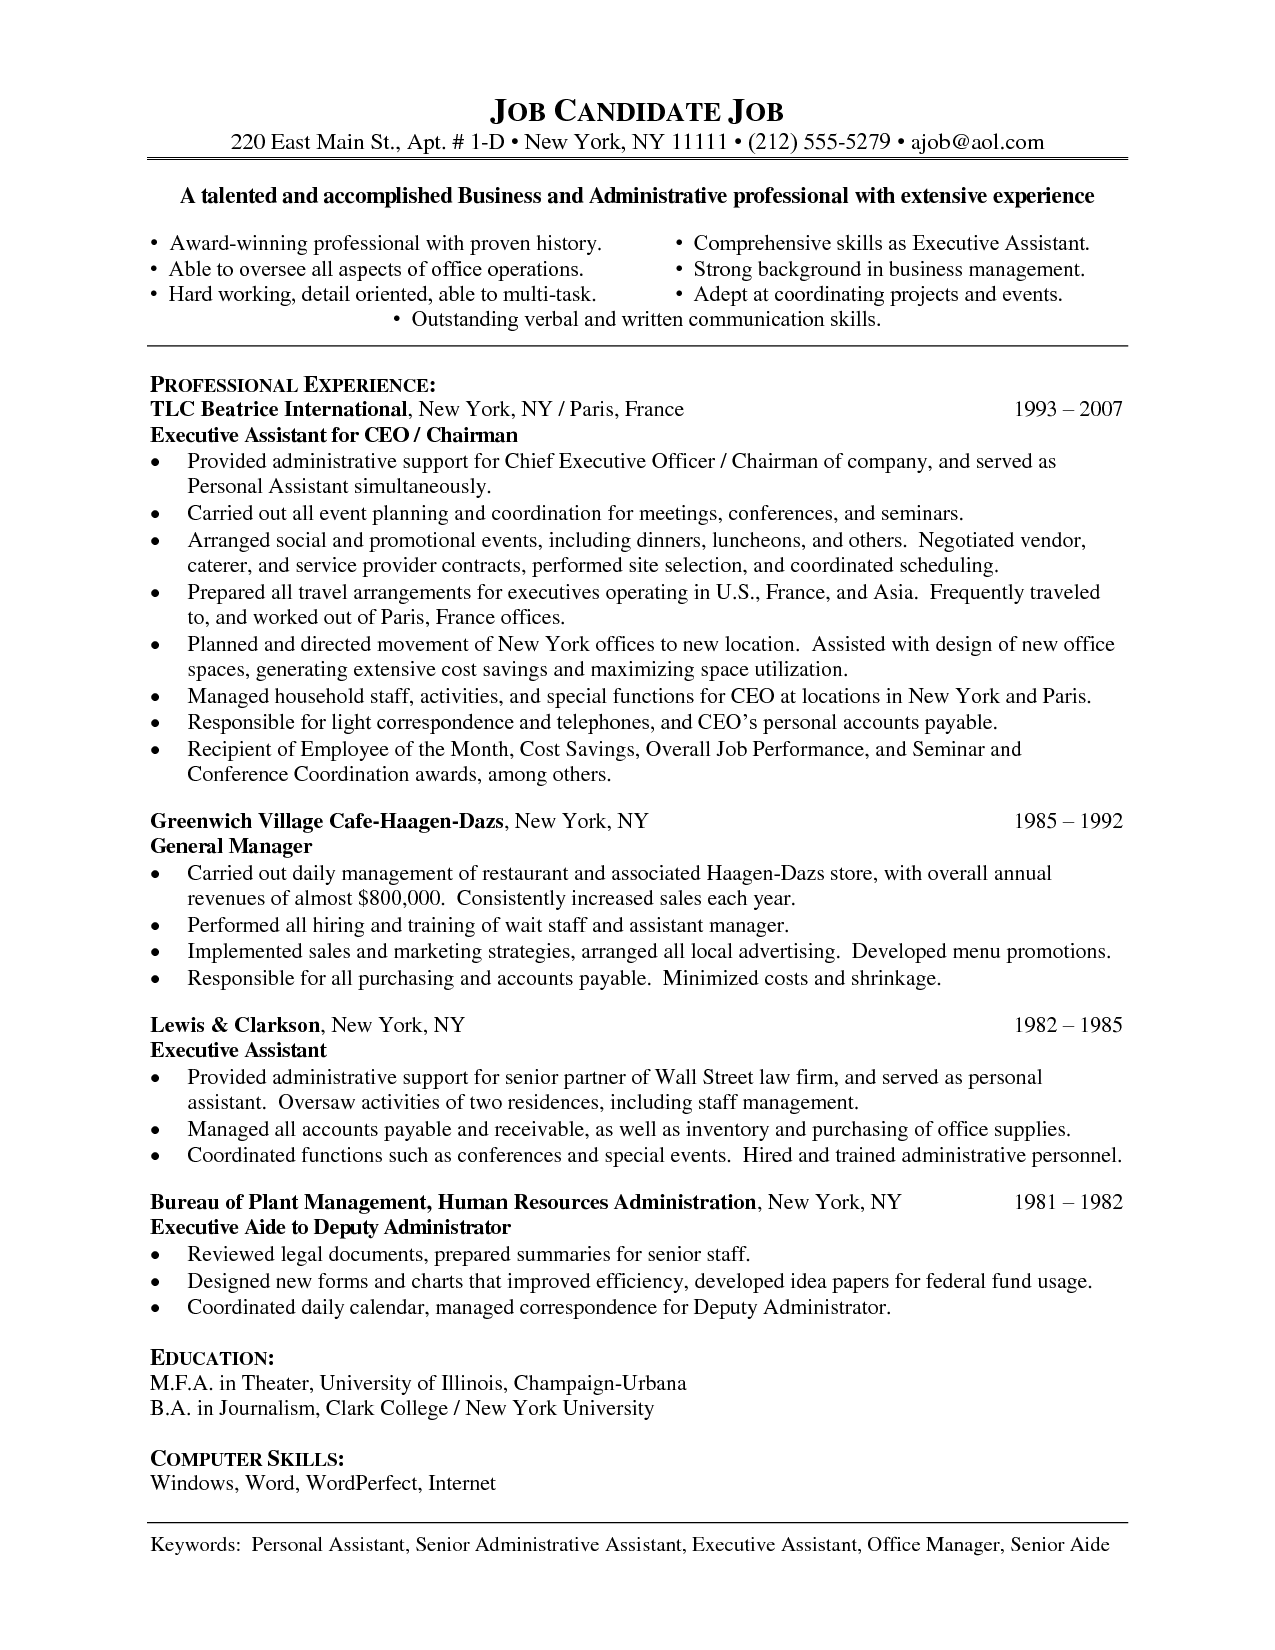 Administrative Assistant Resume Summary Administrative Functional Resume Google Search